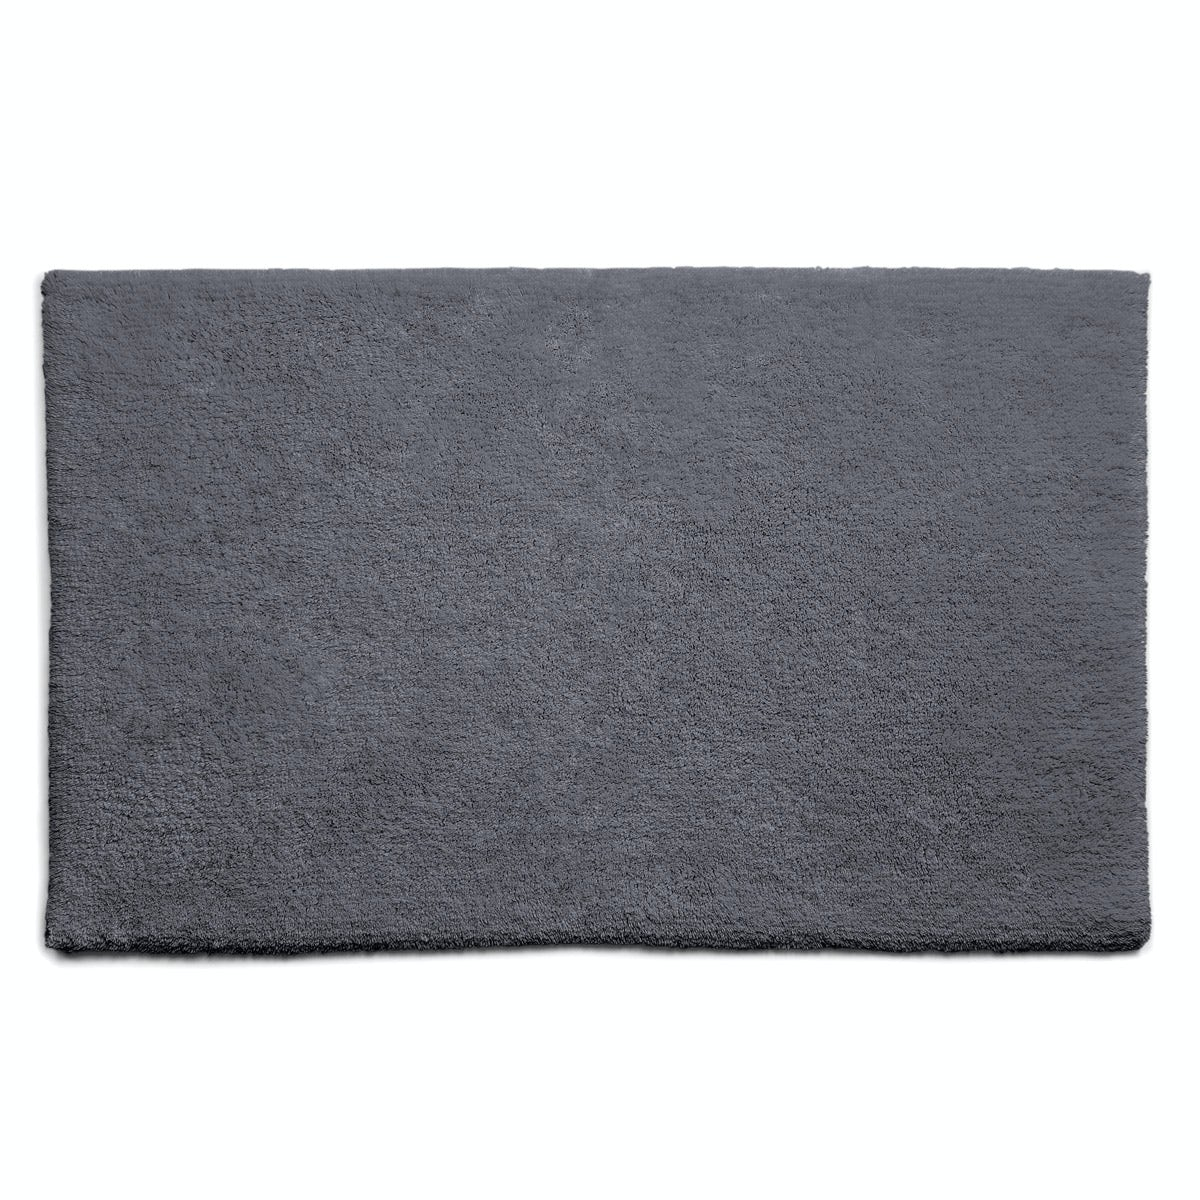 Hug Rug luxury bamboo plain graphite bathroom mat 50 x 80cm